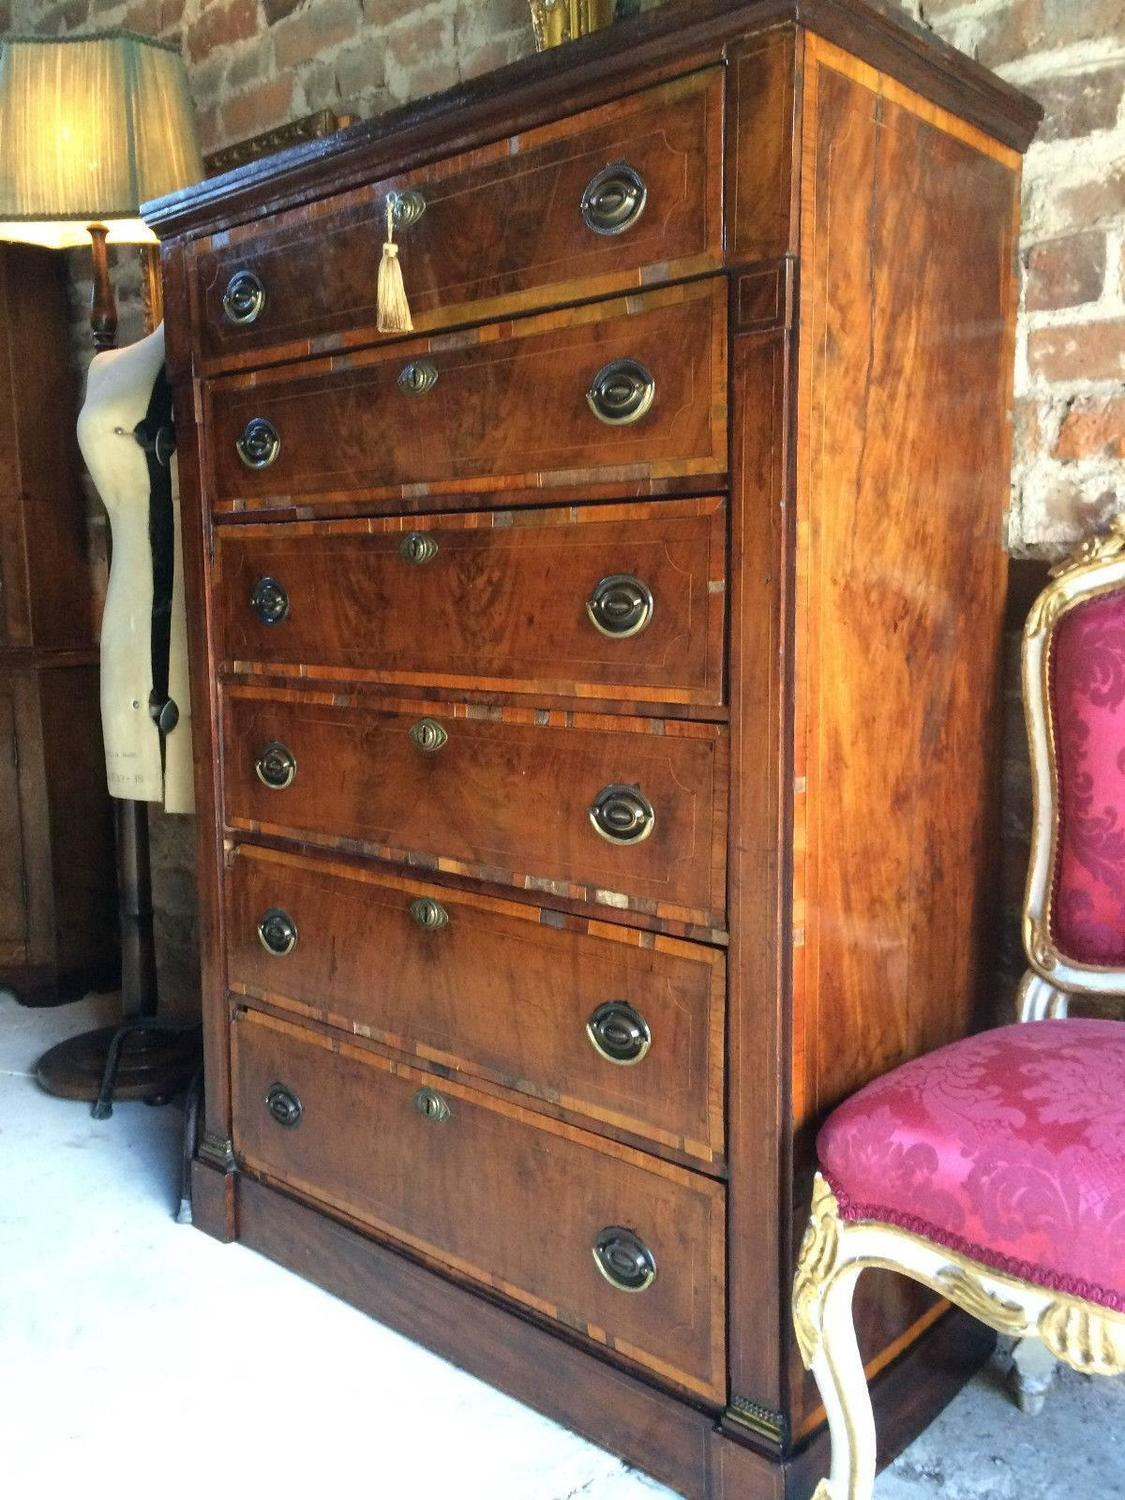 #A35C28 George III Antique Tallboy Chest Of Drawers Secretaire  with 1125x1500 px of Highly Rated Vintage Tallboy Chest Of Drawers 15001125 picture/photo @ avoidforclosure.info